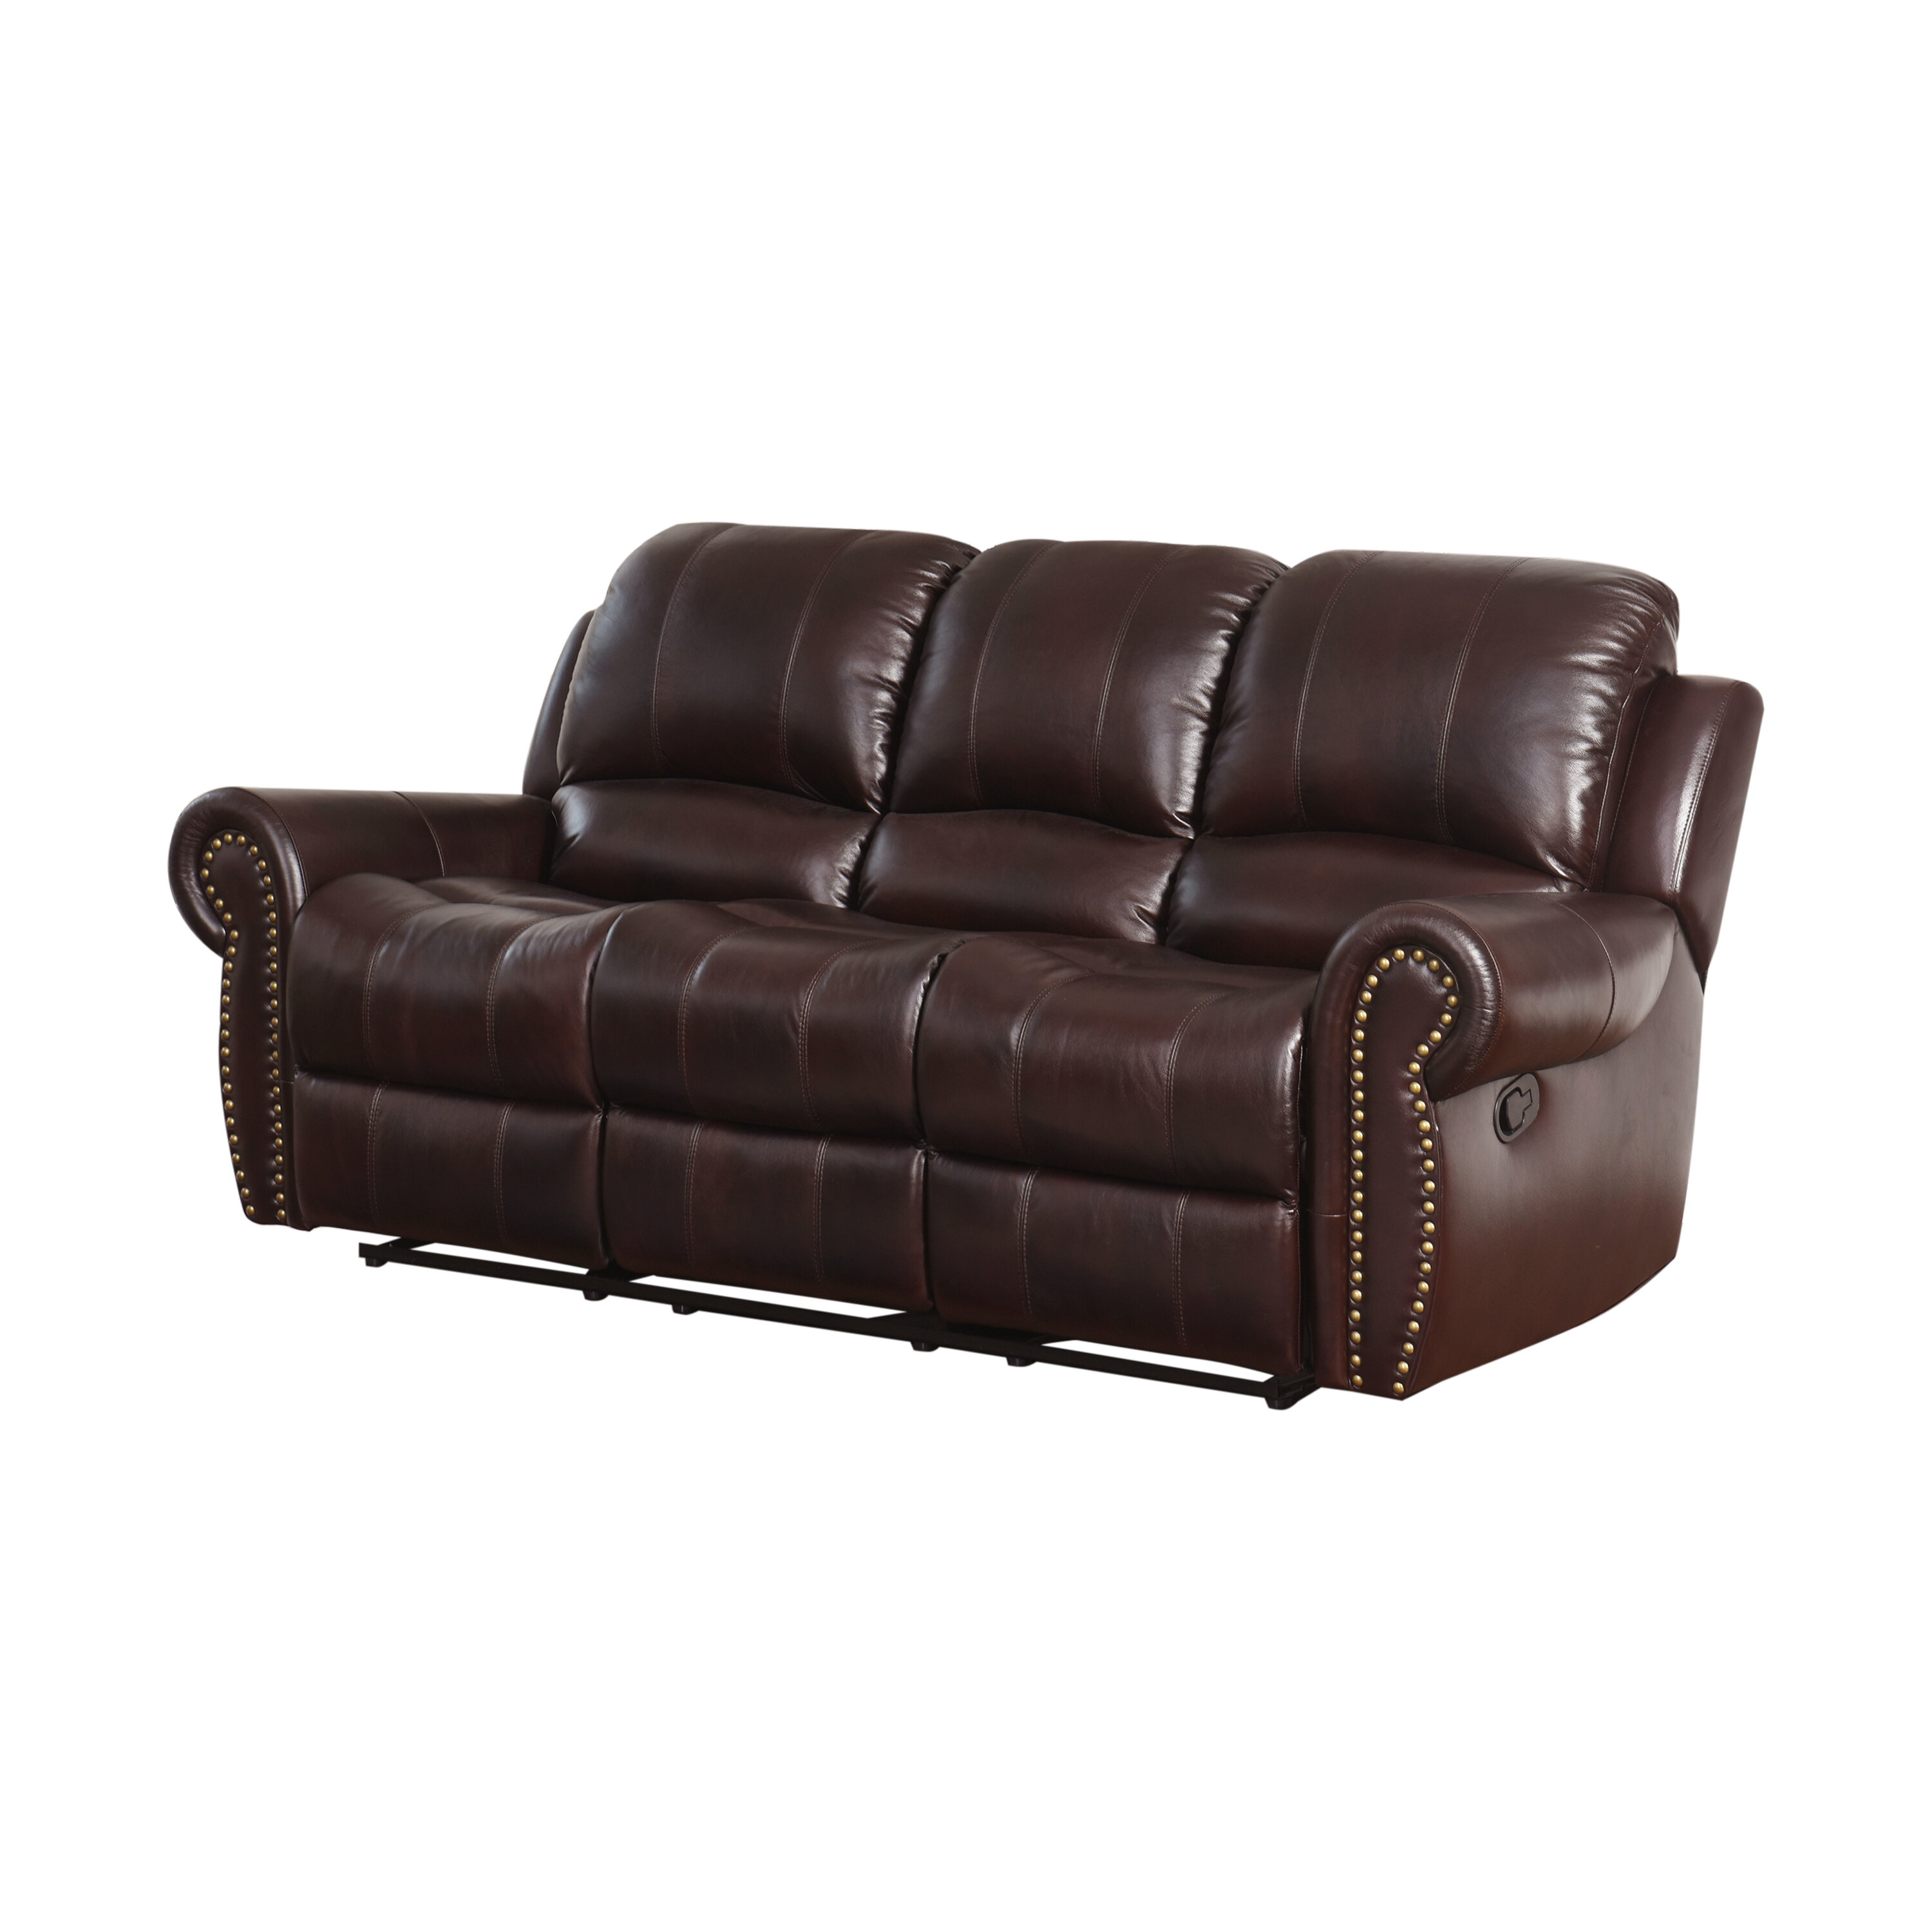 Barnsdale Leather Reclining Sofa